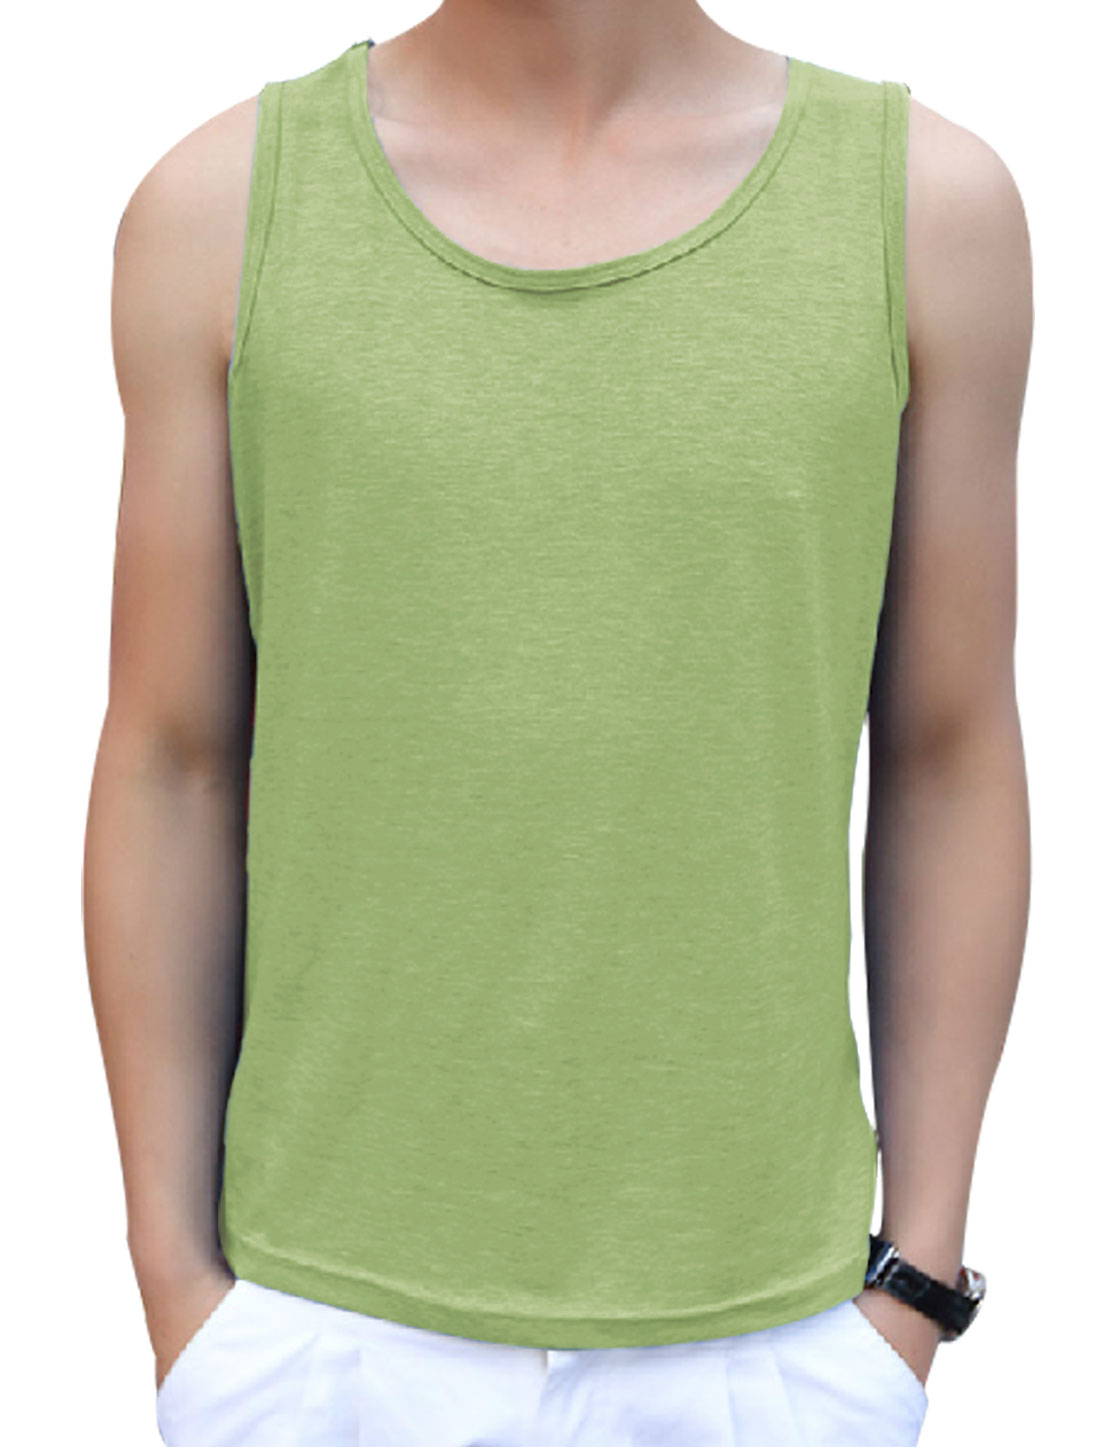 Men's Sleeveless Pullover Summer Fit Casual Top Pea Green M